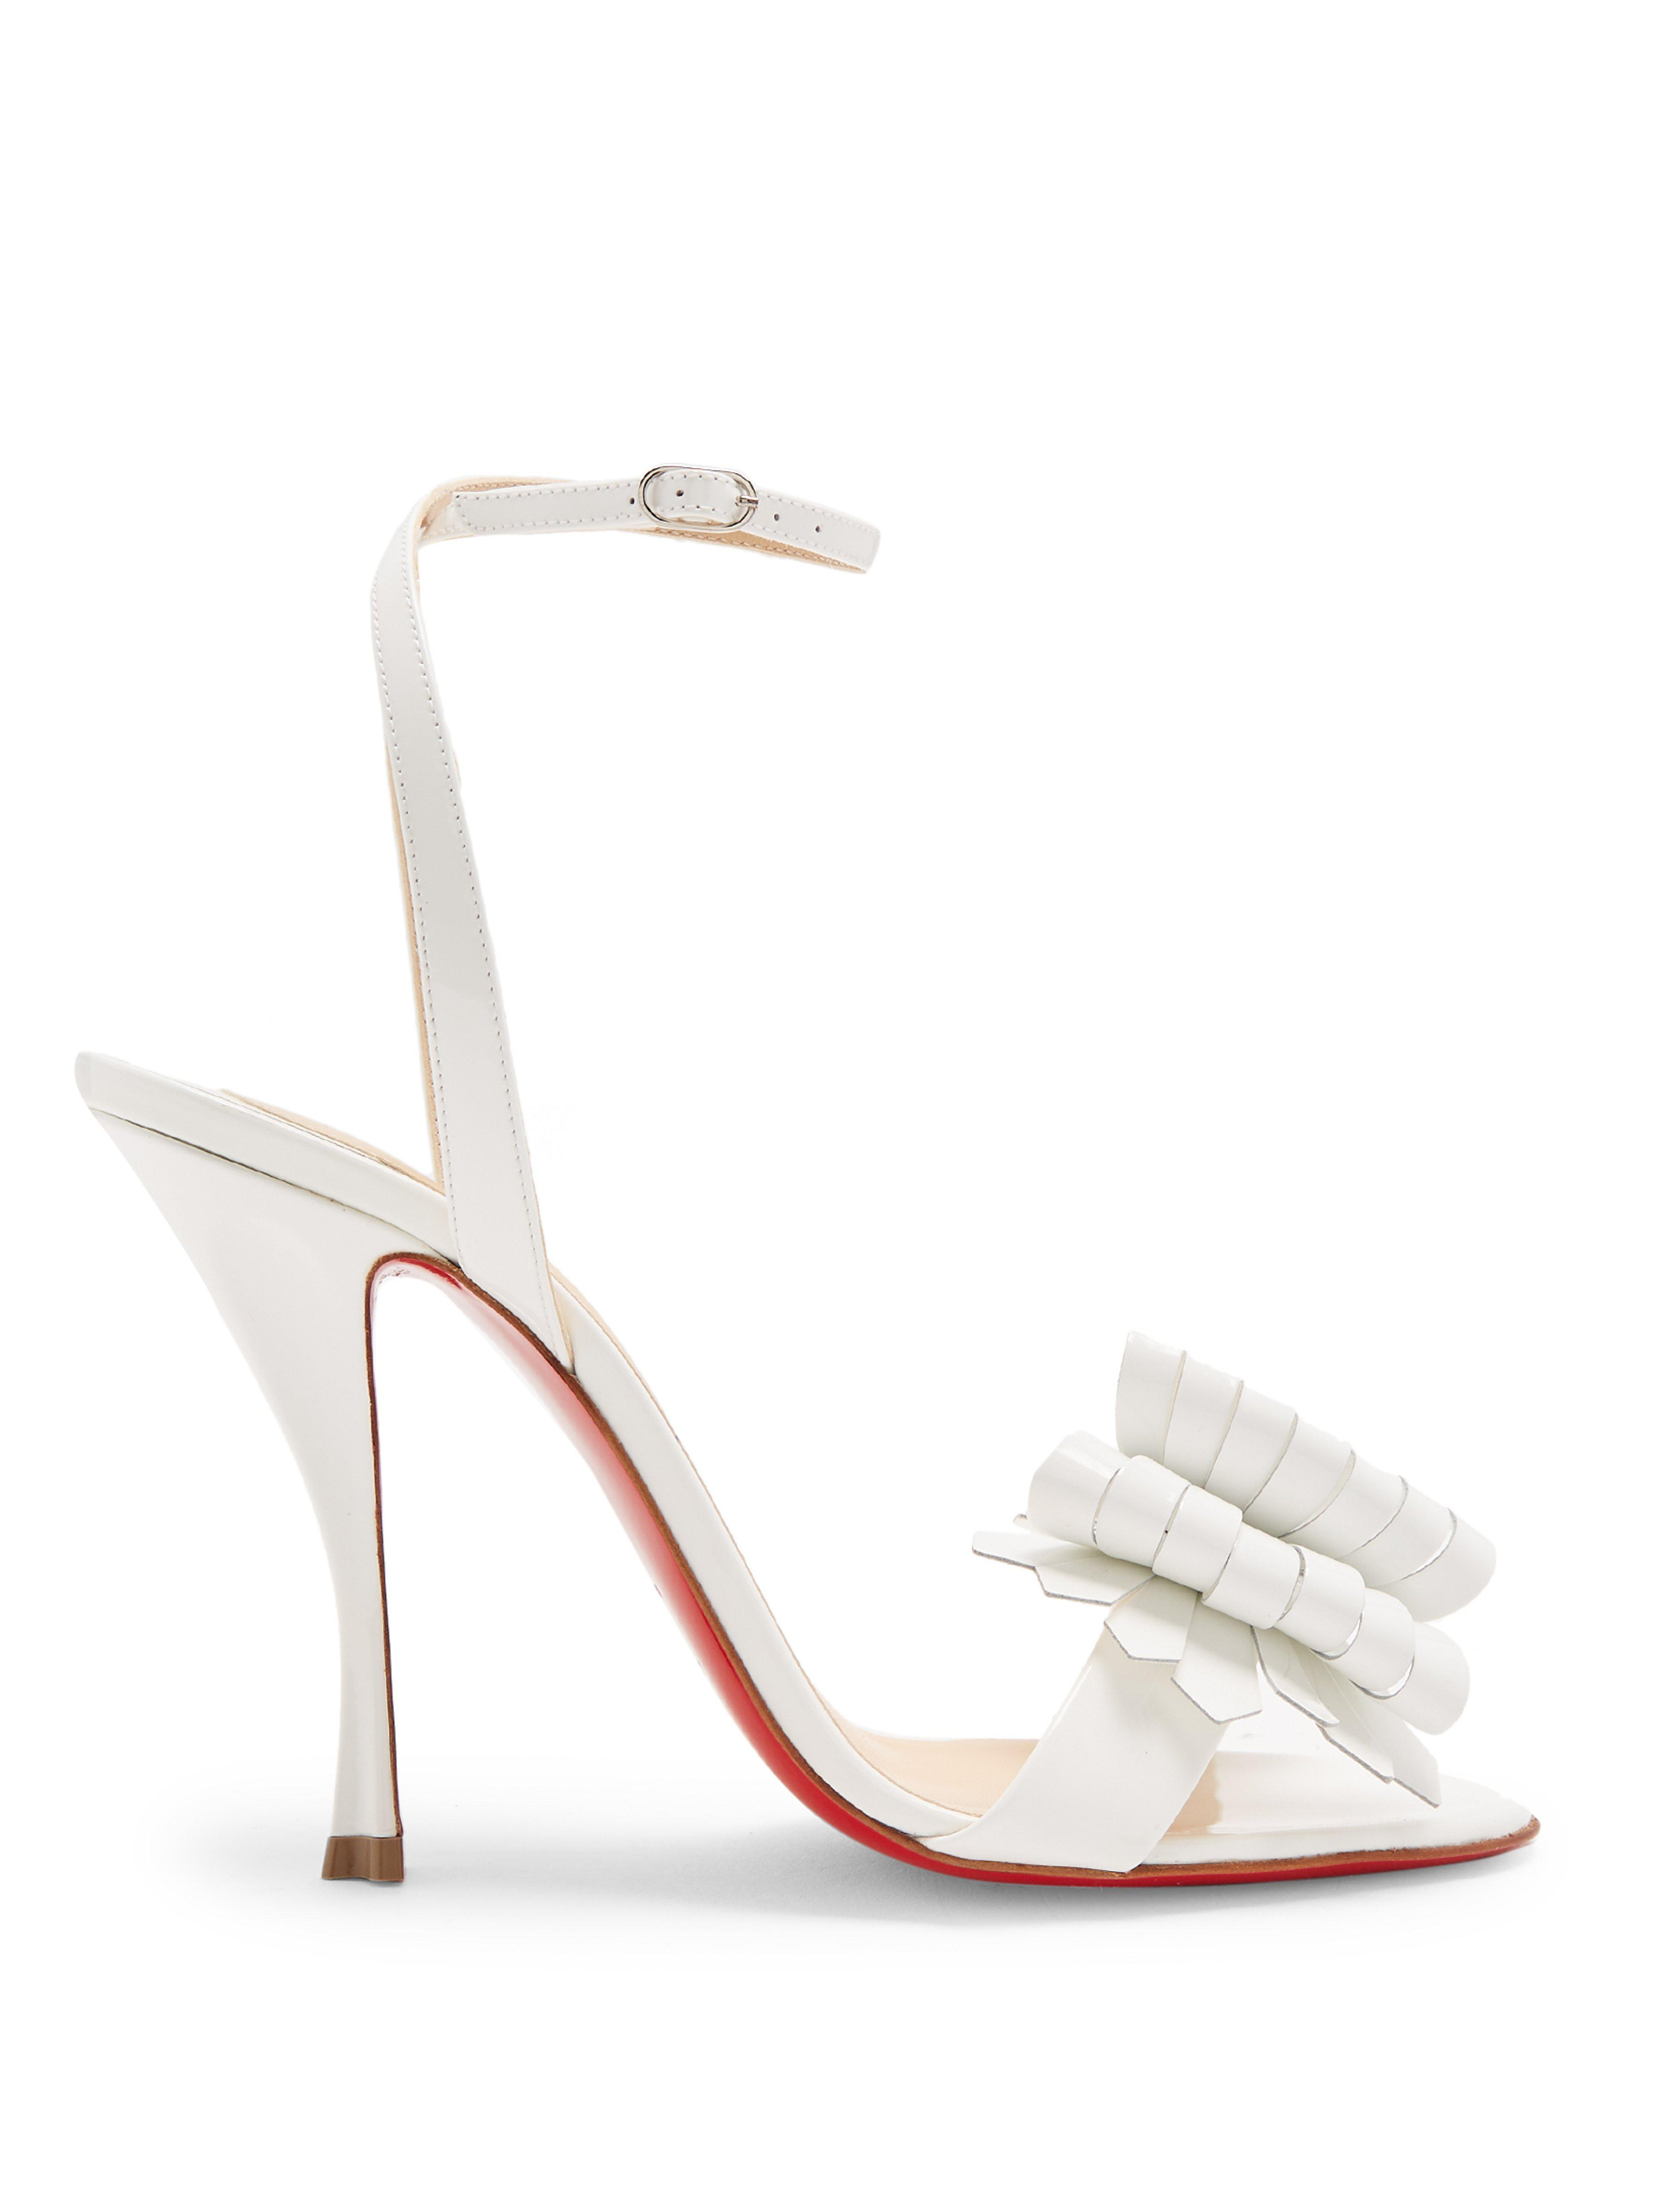 58652a31293 Christian Louboutin. Women s Miss Valois 85mm Patent-leather Sandals